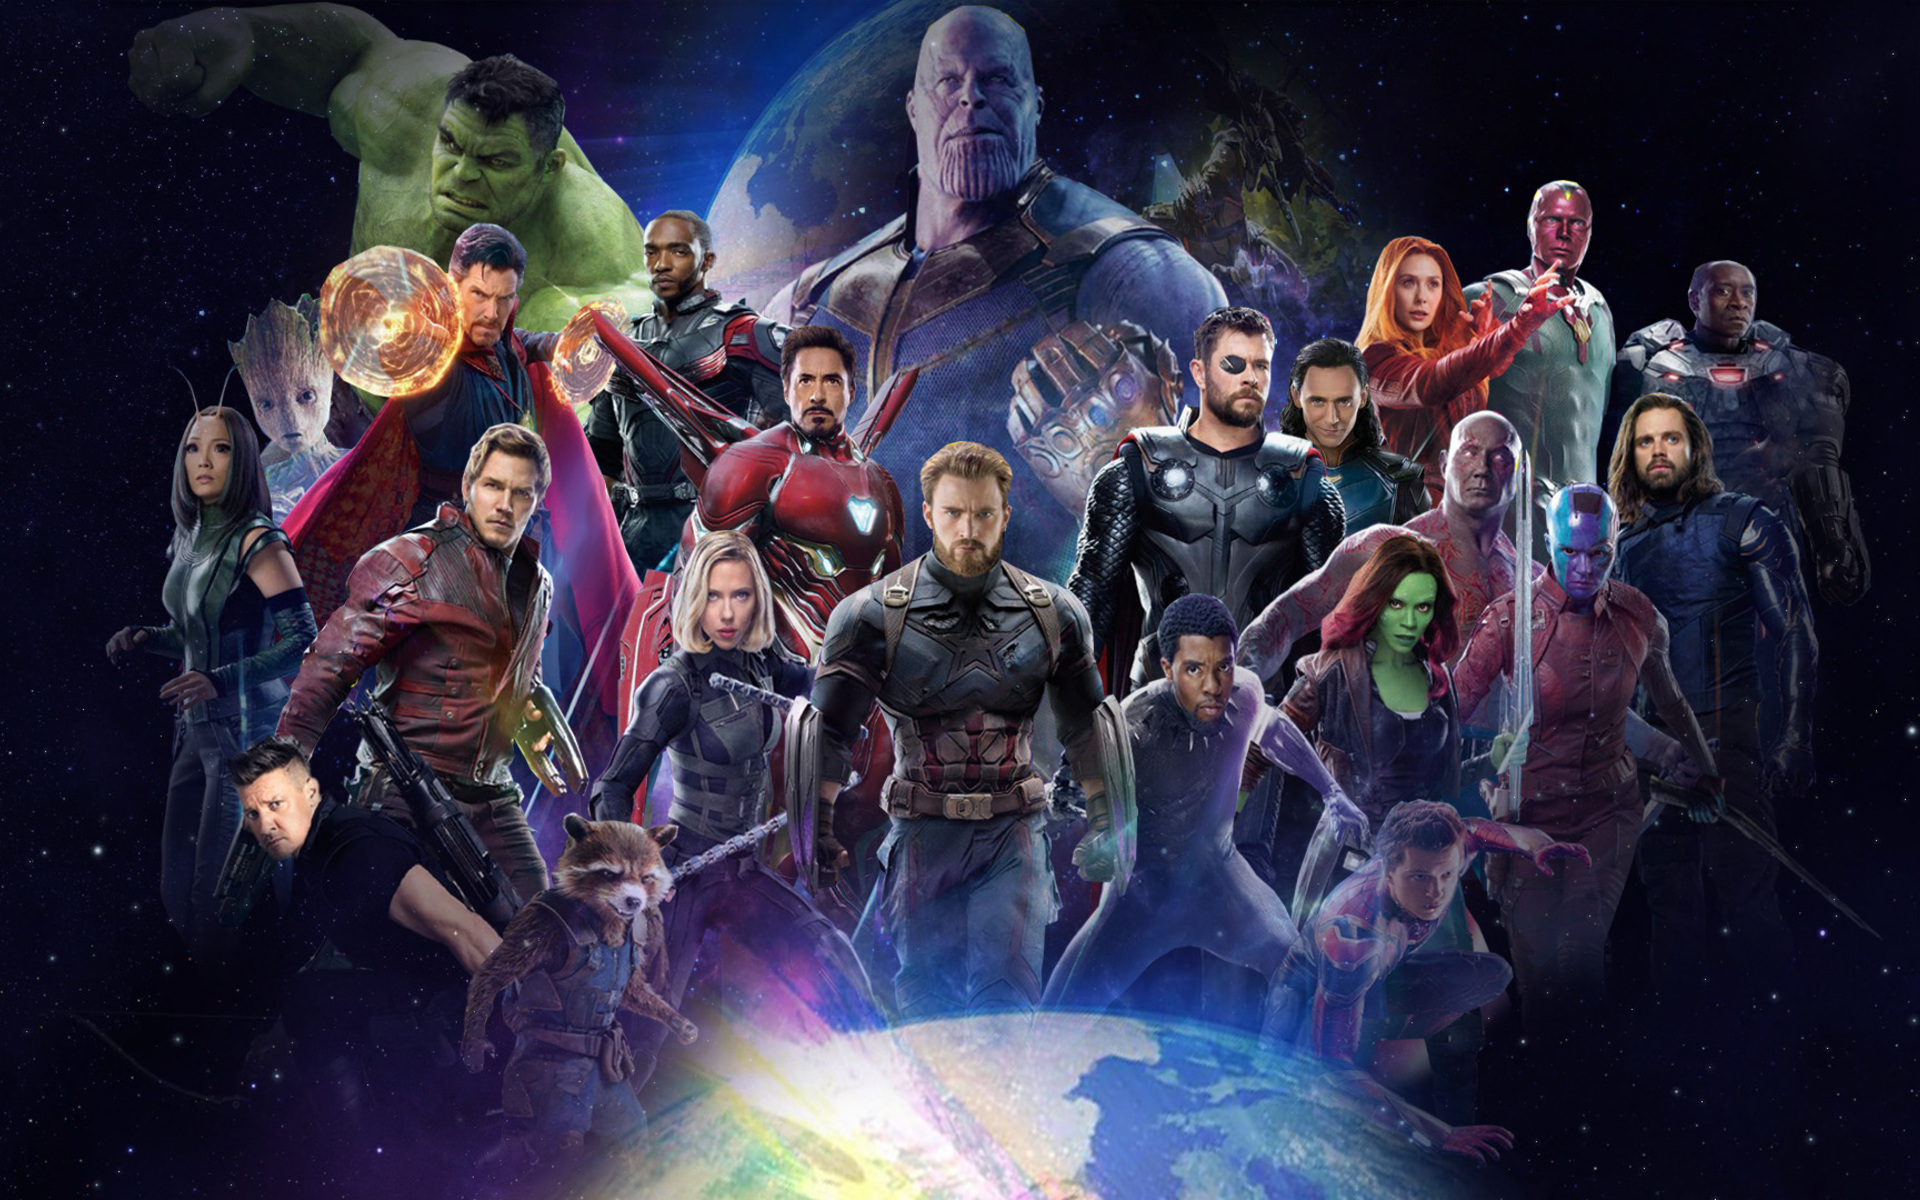 1920x1200 avengers infinity war 2018 all characters poster 1080p resolution hd 4k wallpapers - Infinity war hd download ...